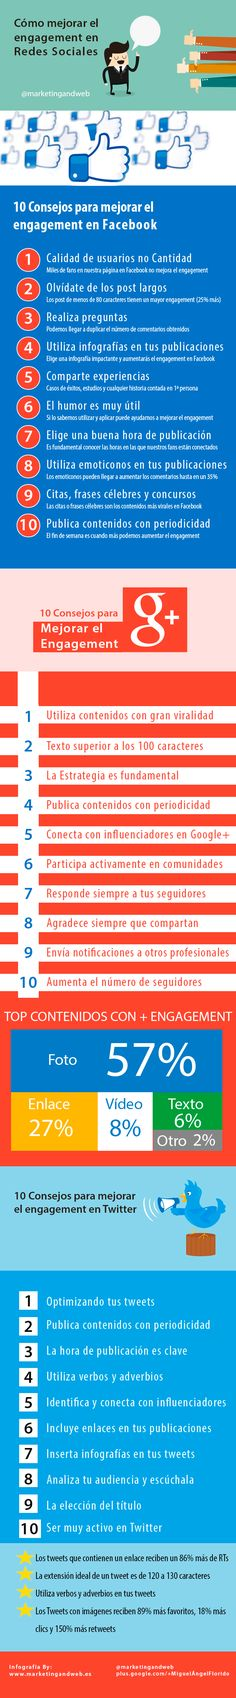 #Infografia #CommunityManager cómo mejorar el engagement en facebook twitter y google plus. #TAVnews